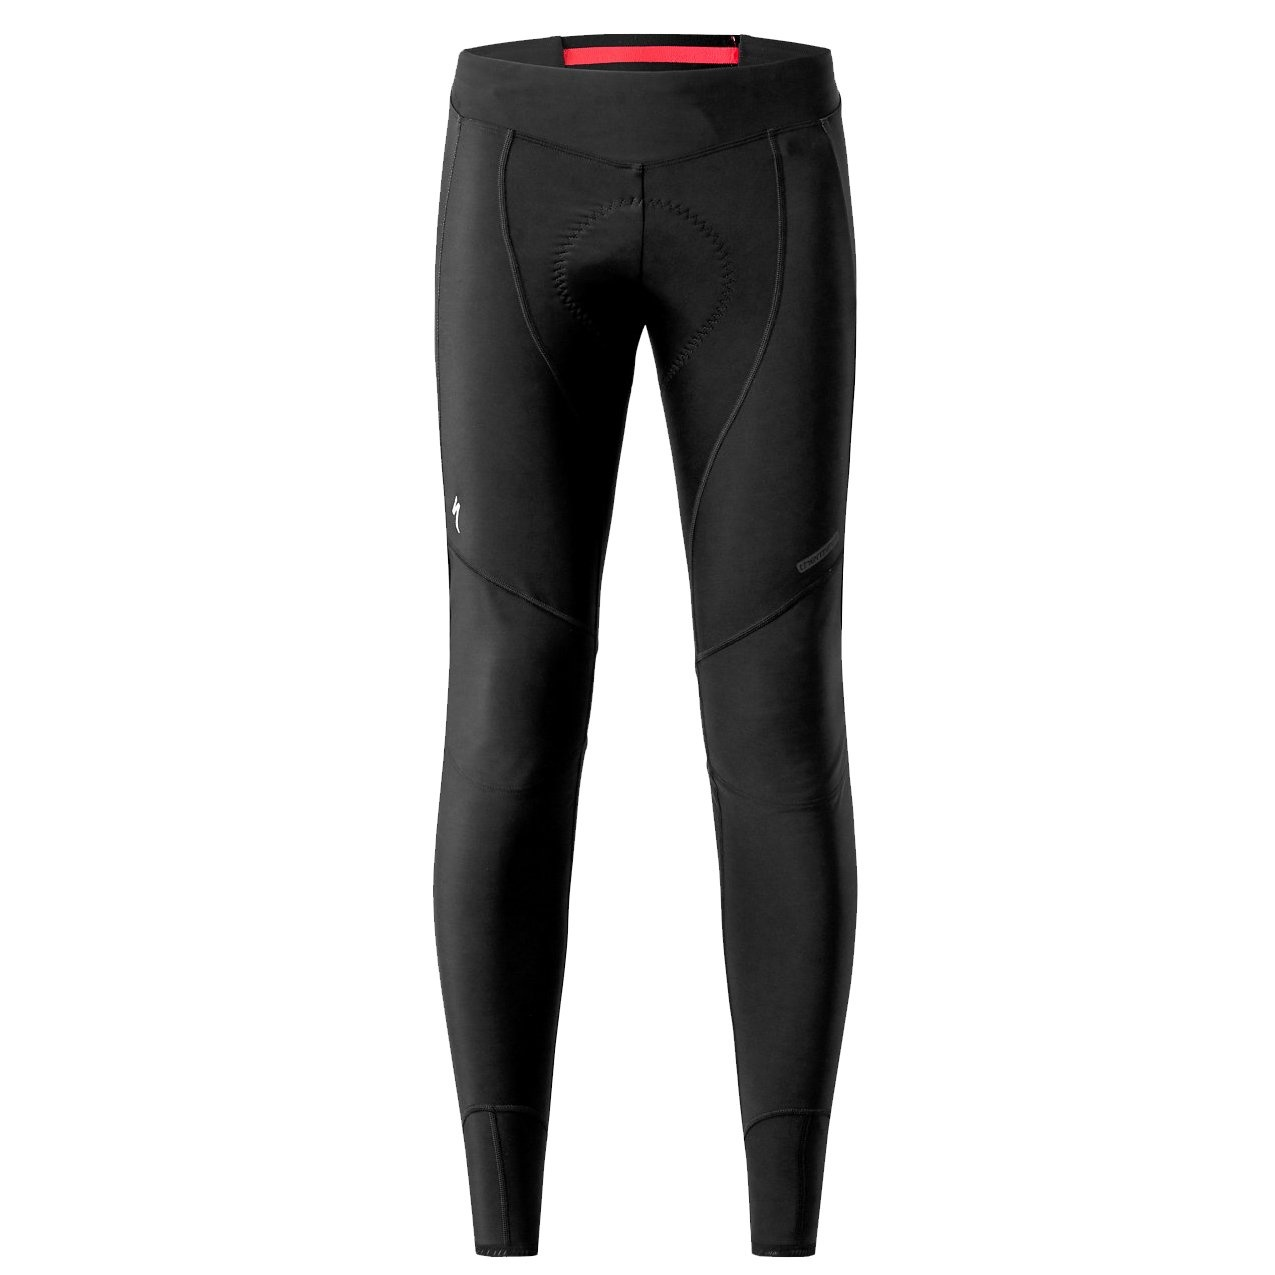 Specialized Specialized Thermal Cycling Tights Women's